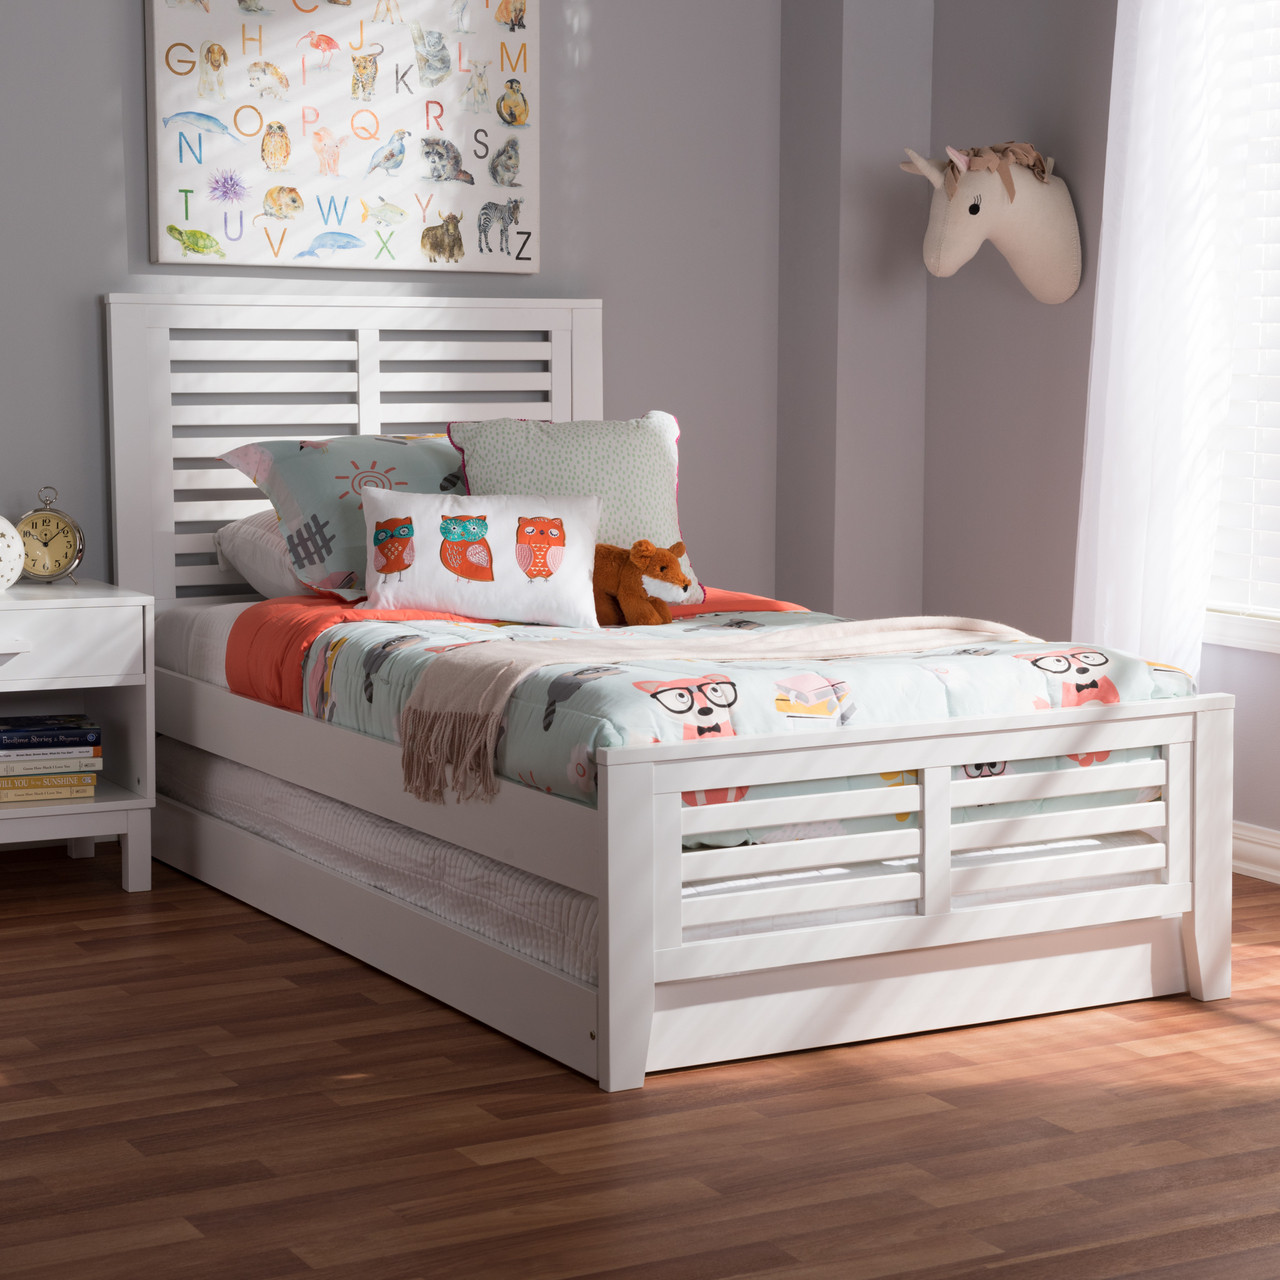 749f042fc63c Baxton Studio Sedona Modern Classic Mission Style White-Finished Wood Twin  Platform Bed with Trundle - DealBeds.com